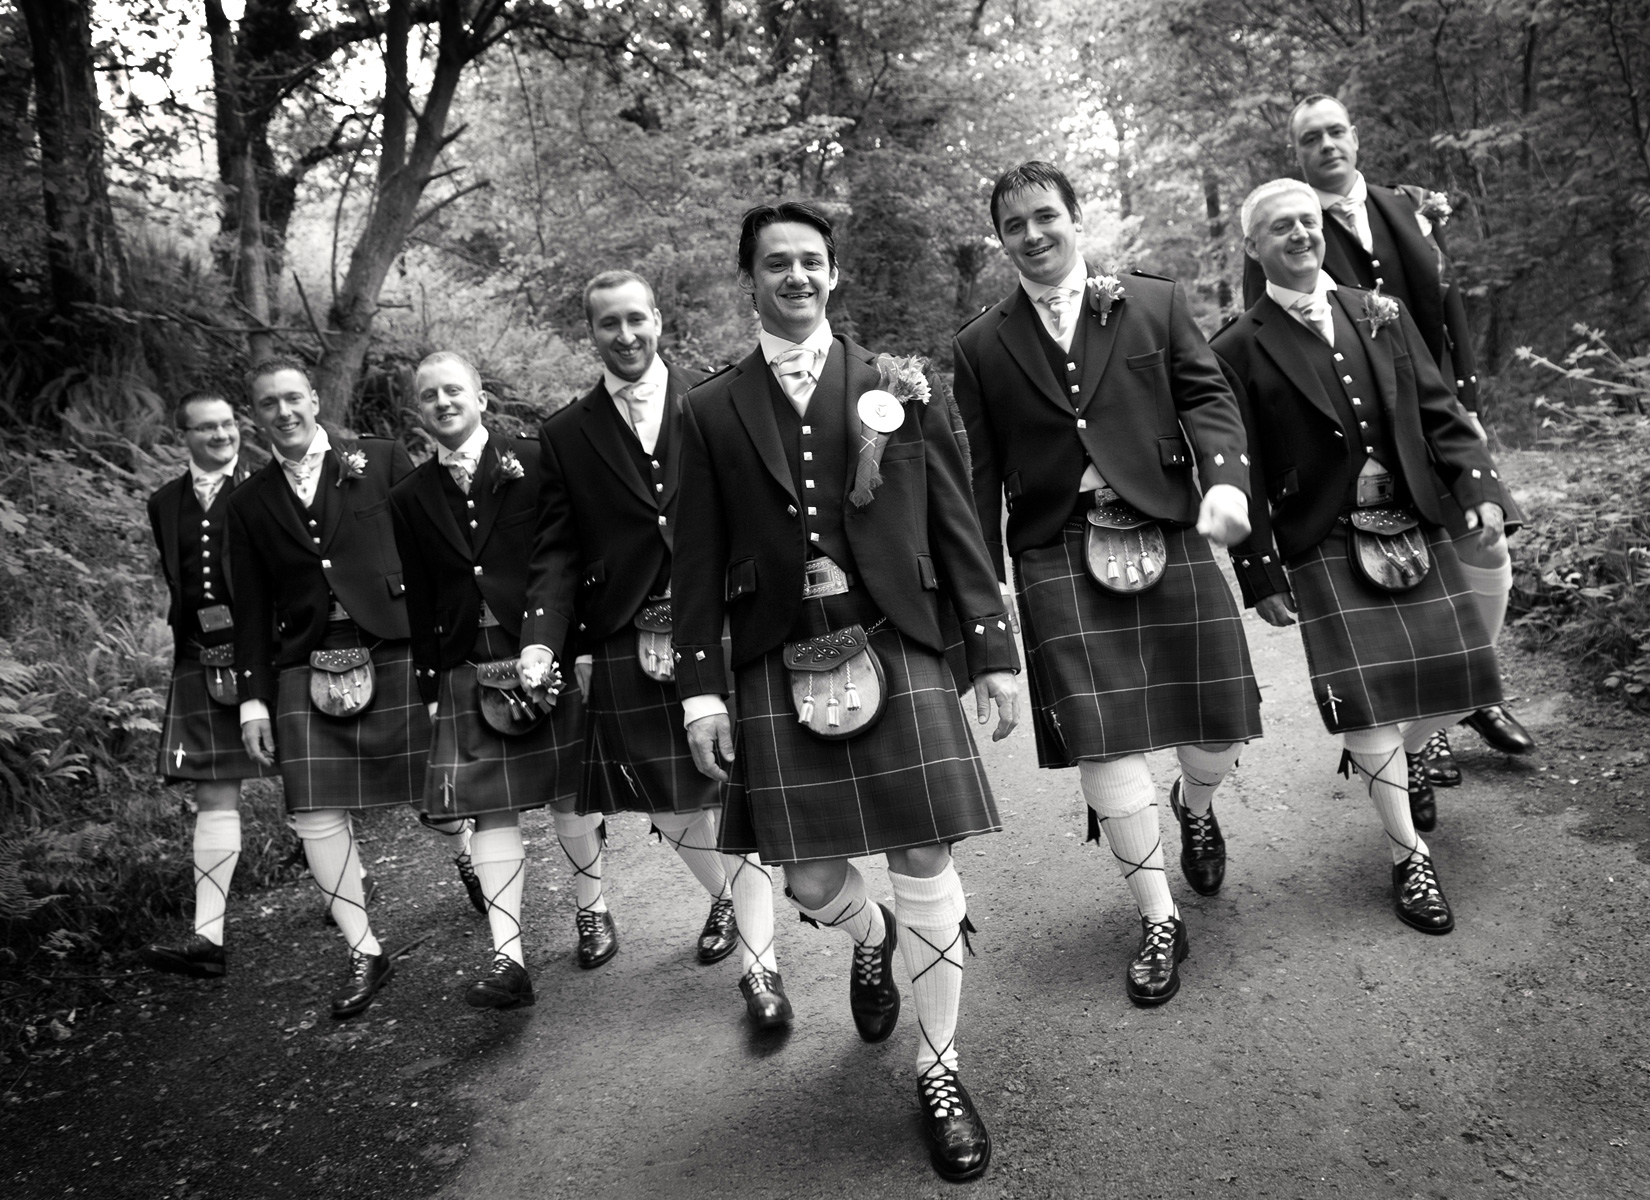 Groom-and-ushers-kilts-walking-Ebeneezer-Chapel-Cwmtwrch-Uchaf-weddings